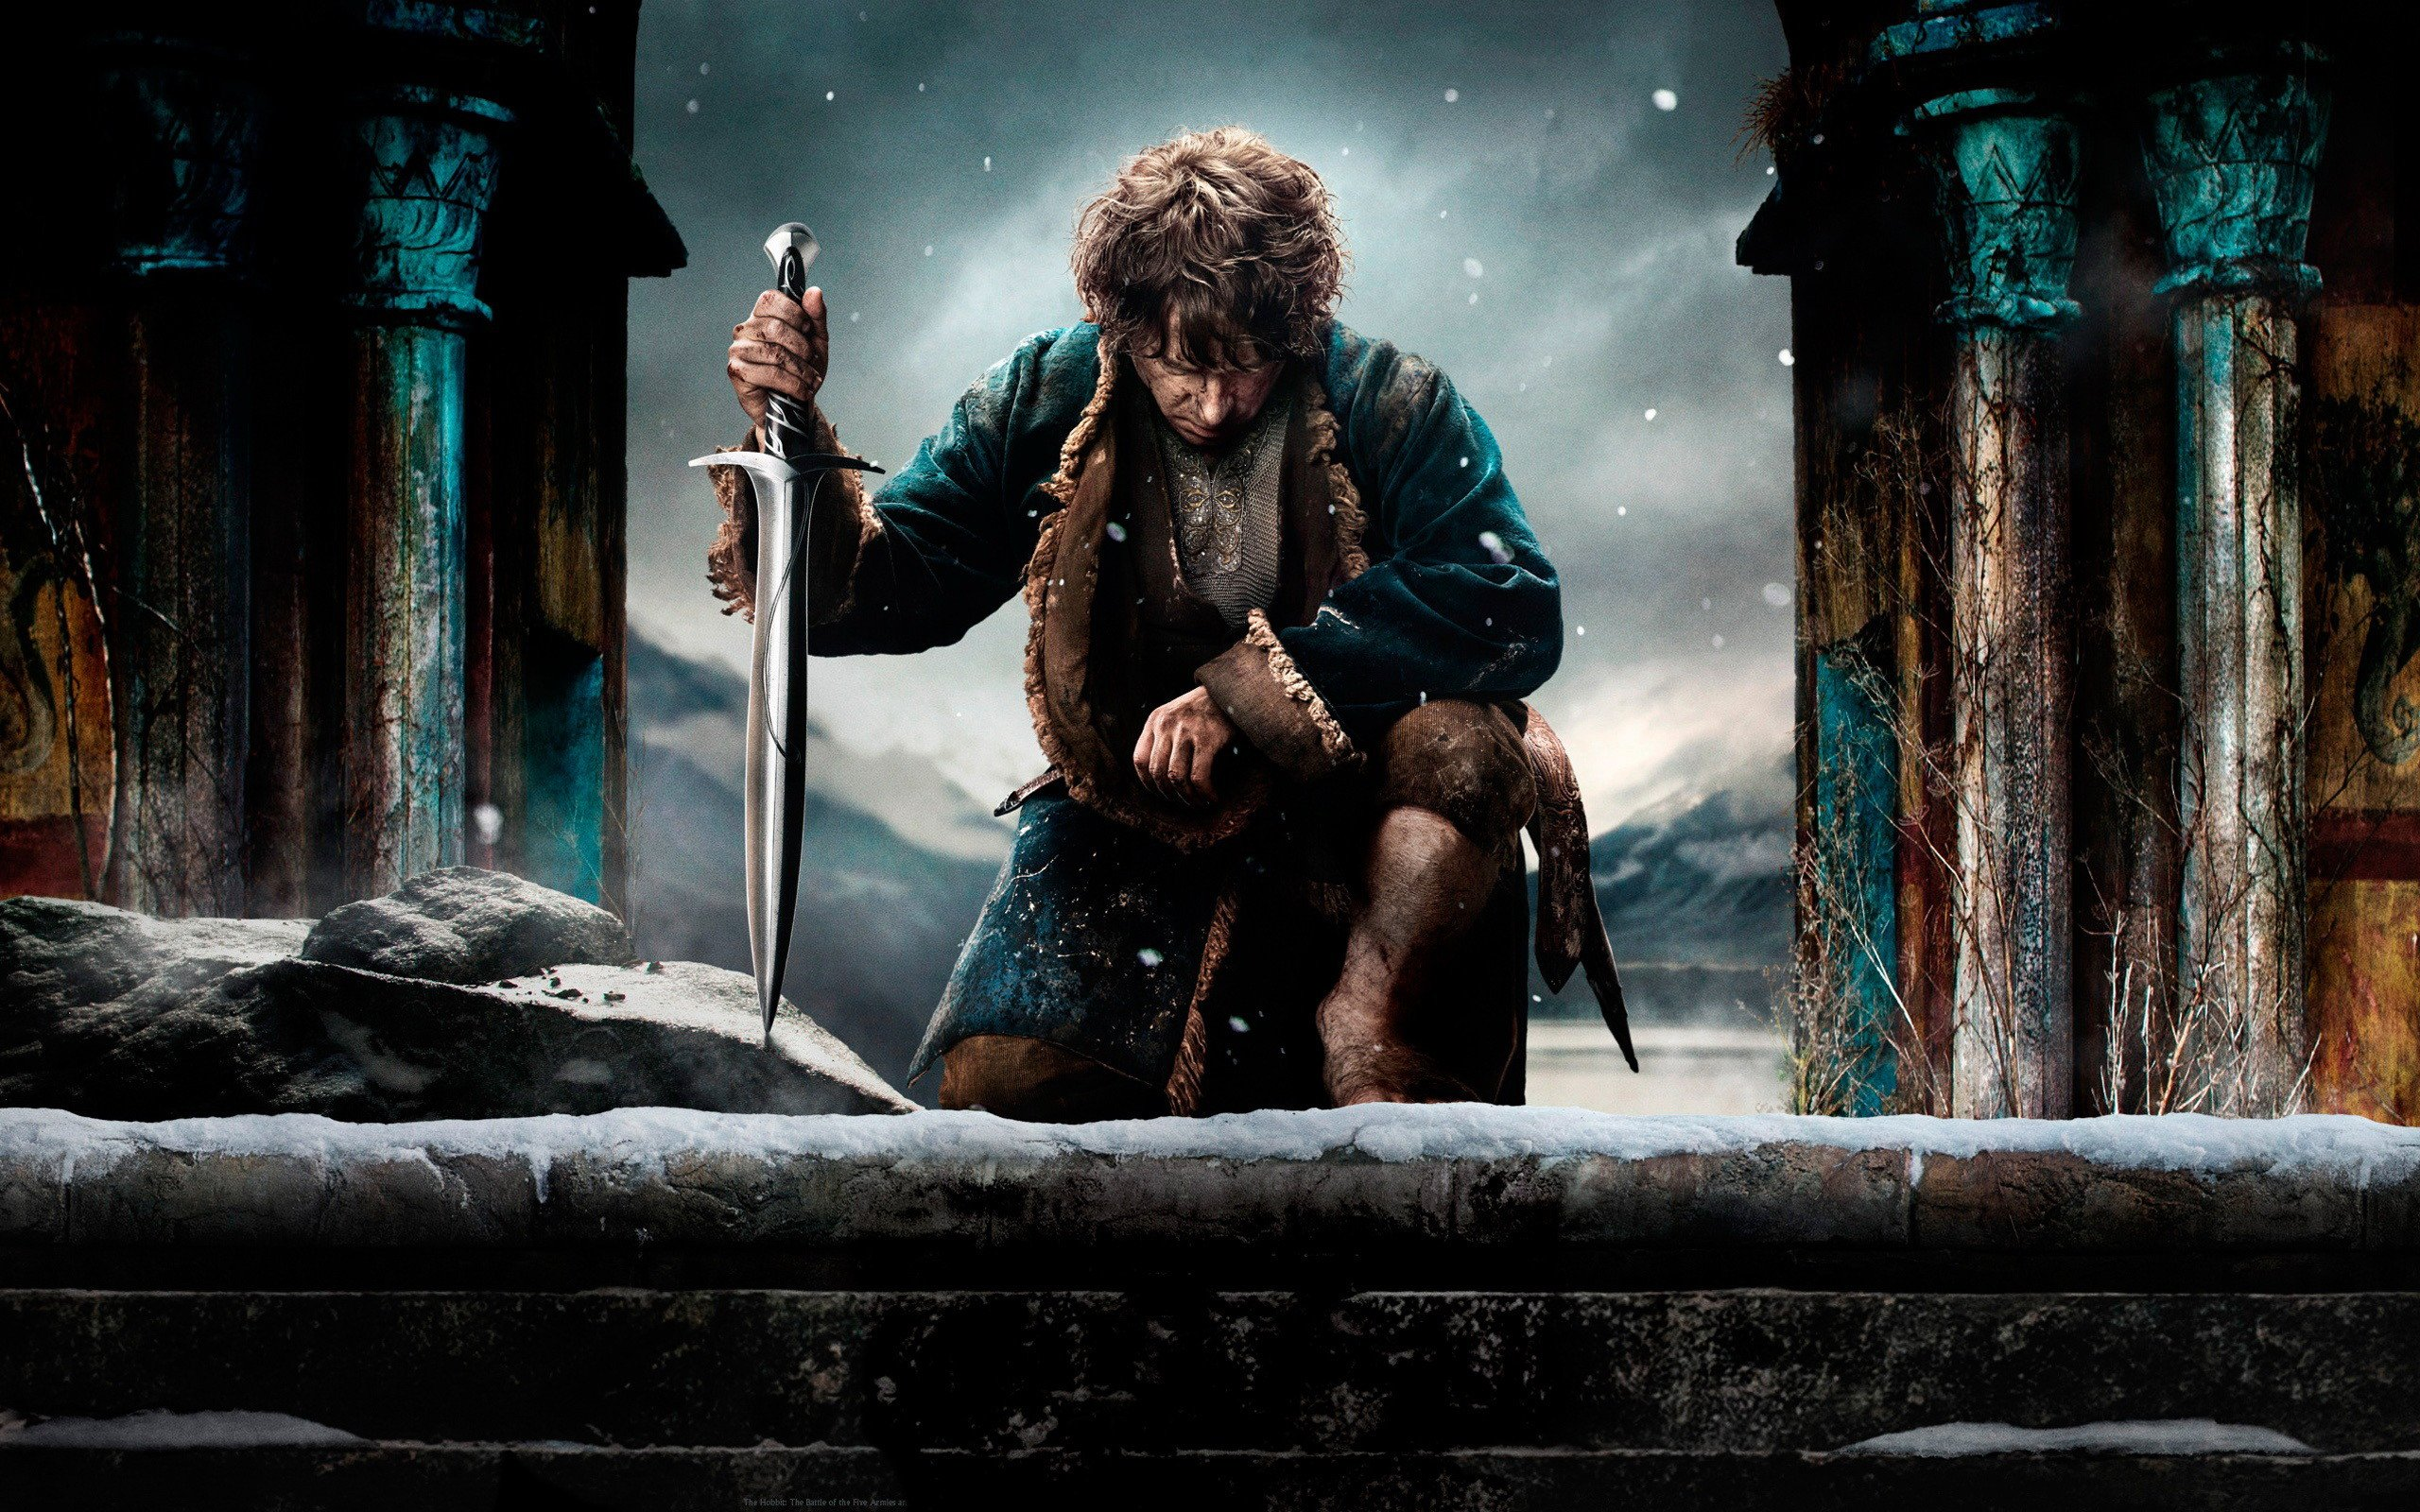 The Hobbit Wallpaper 1920x1080 84 images 2560x1600